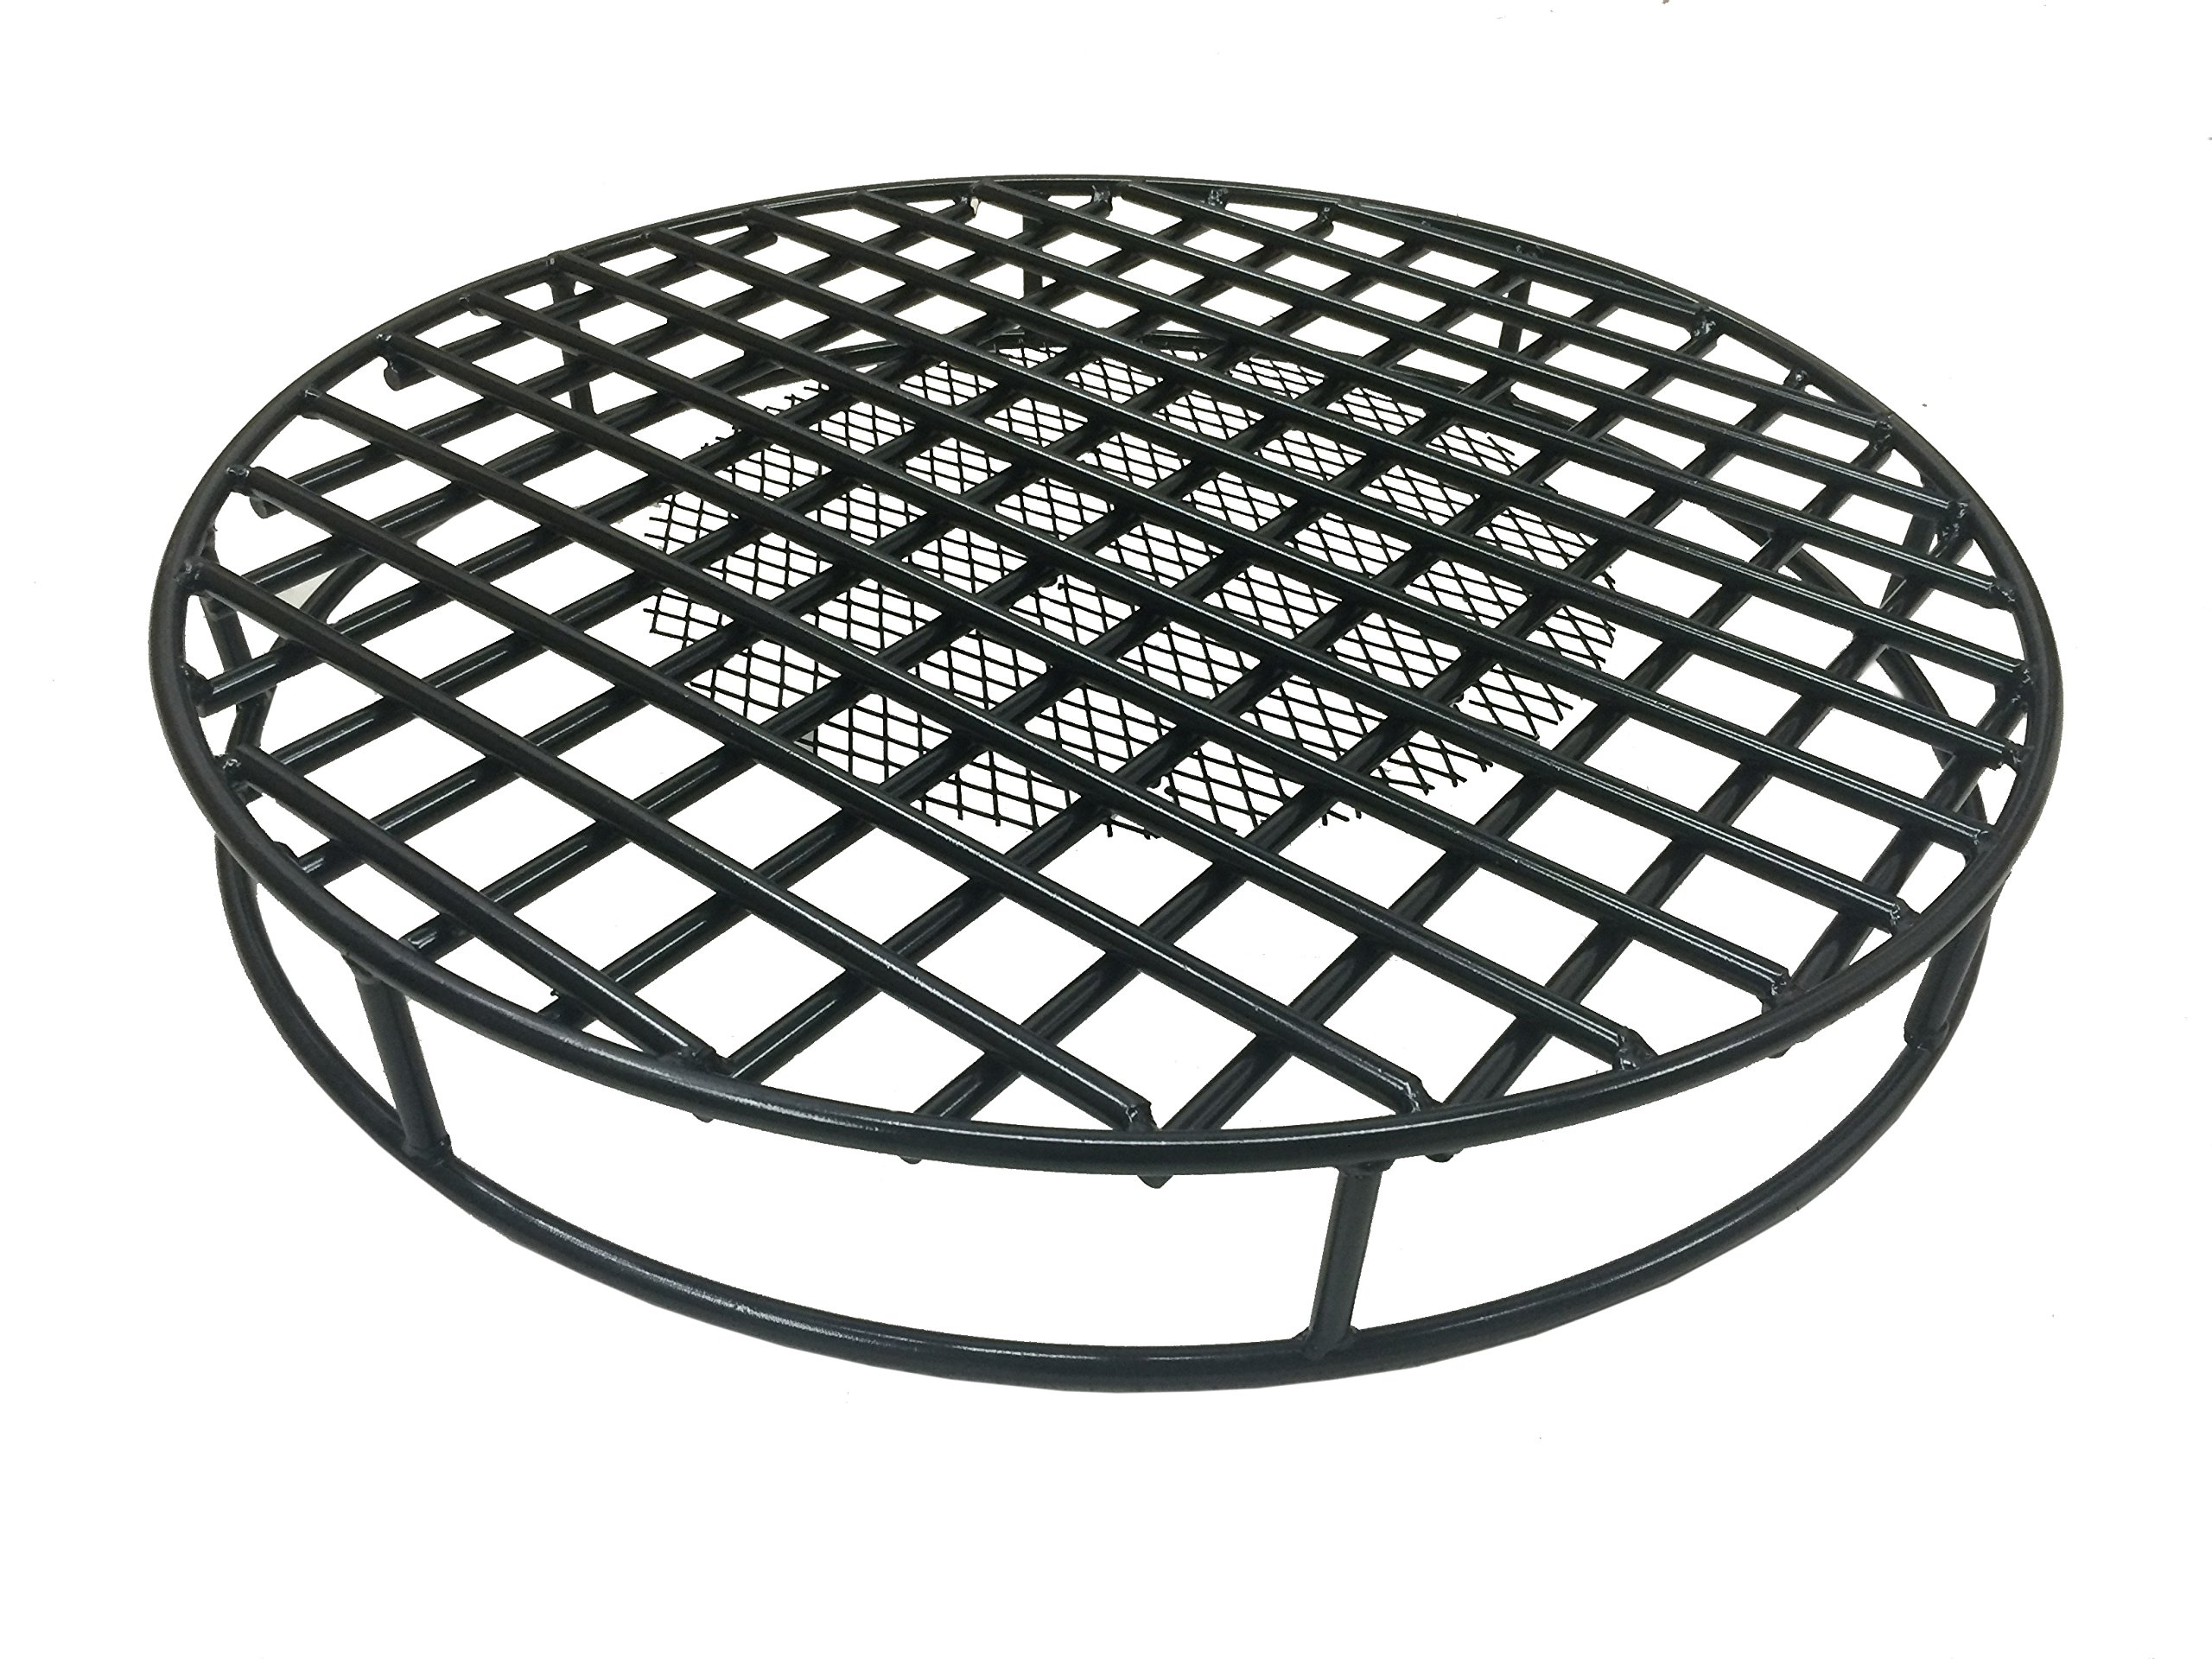 Get Quotations Walden Fire Pit Grate Round 29 5 Diameter Premium Heavy Duty Steel With Ember